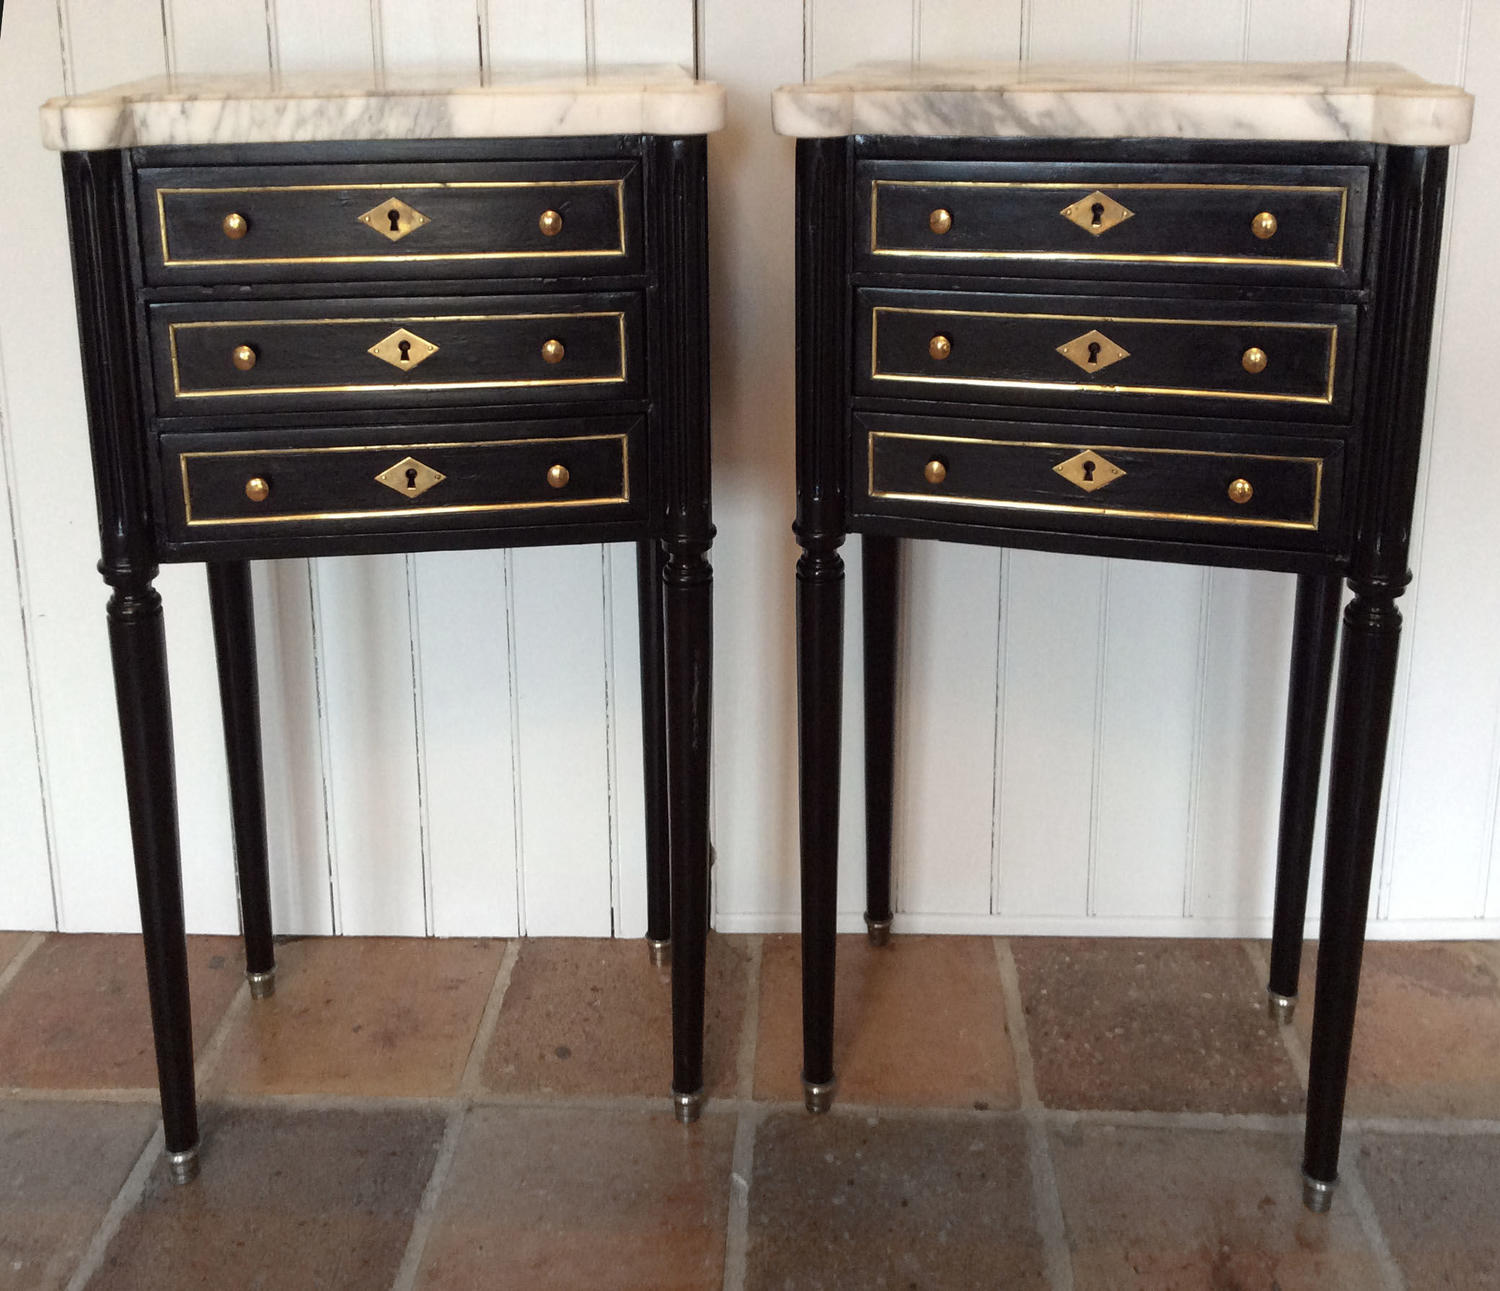 Pair of Louis XVI style Bedside cabinets